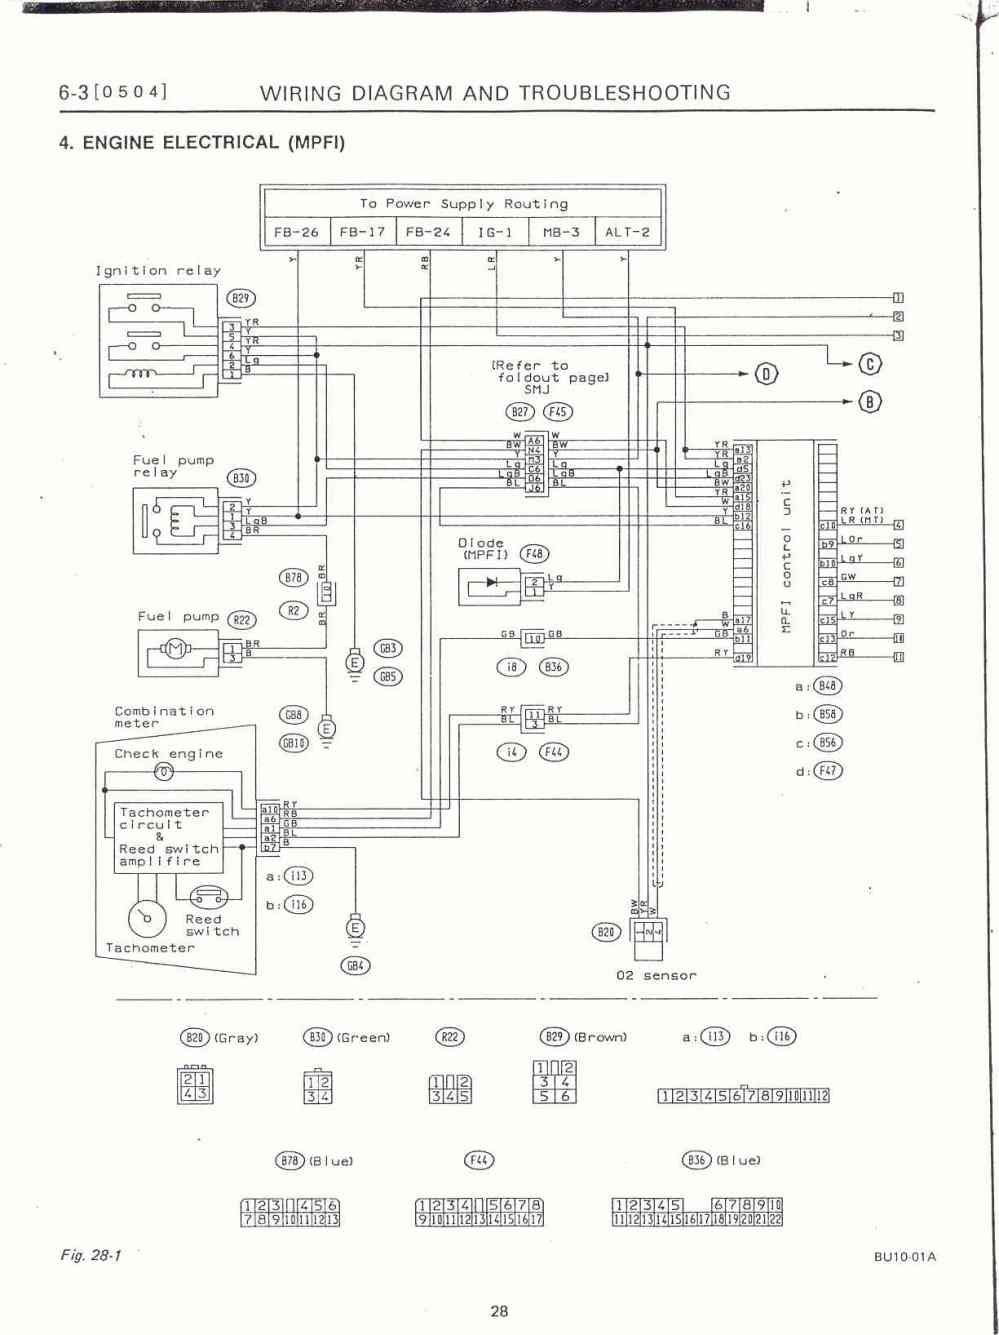 medium resolution of 2005 wrx engine diagram smart wiring diagrams u2022 2005 chevy monte carlo engine diagram 2005